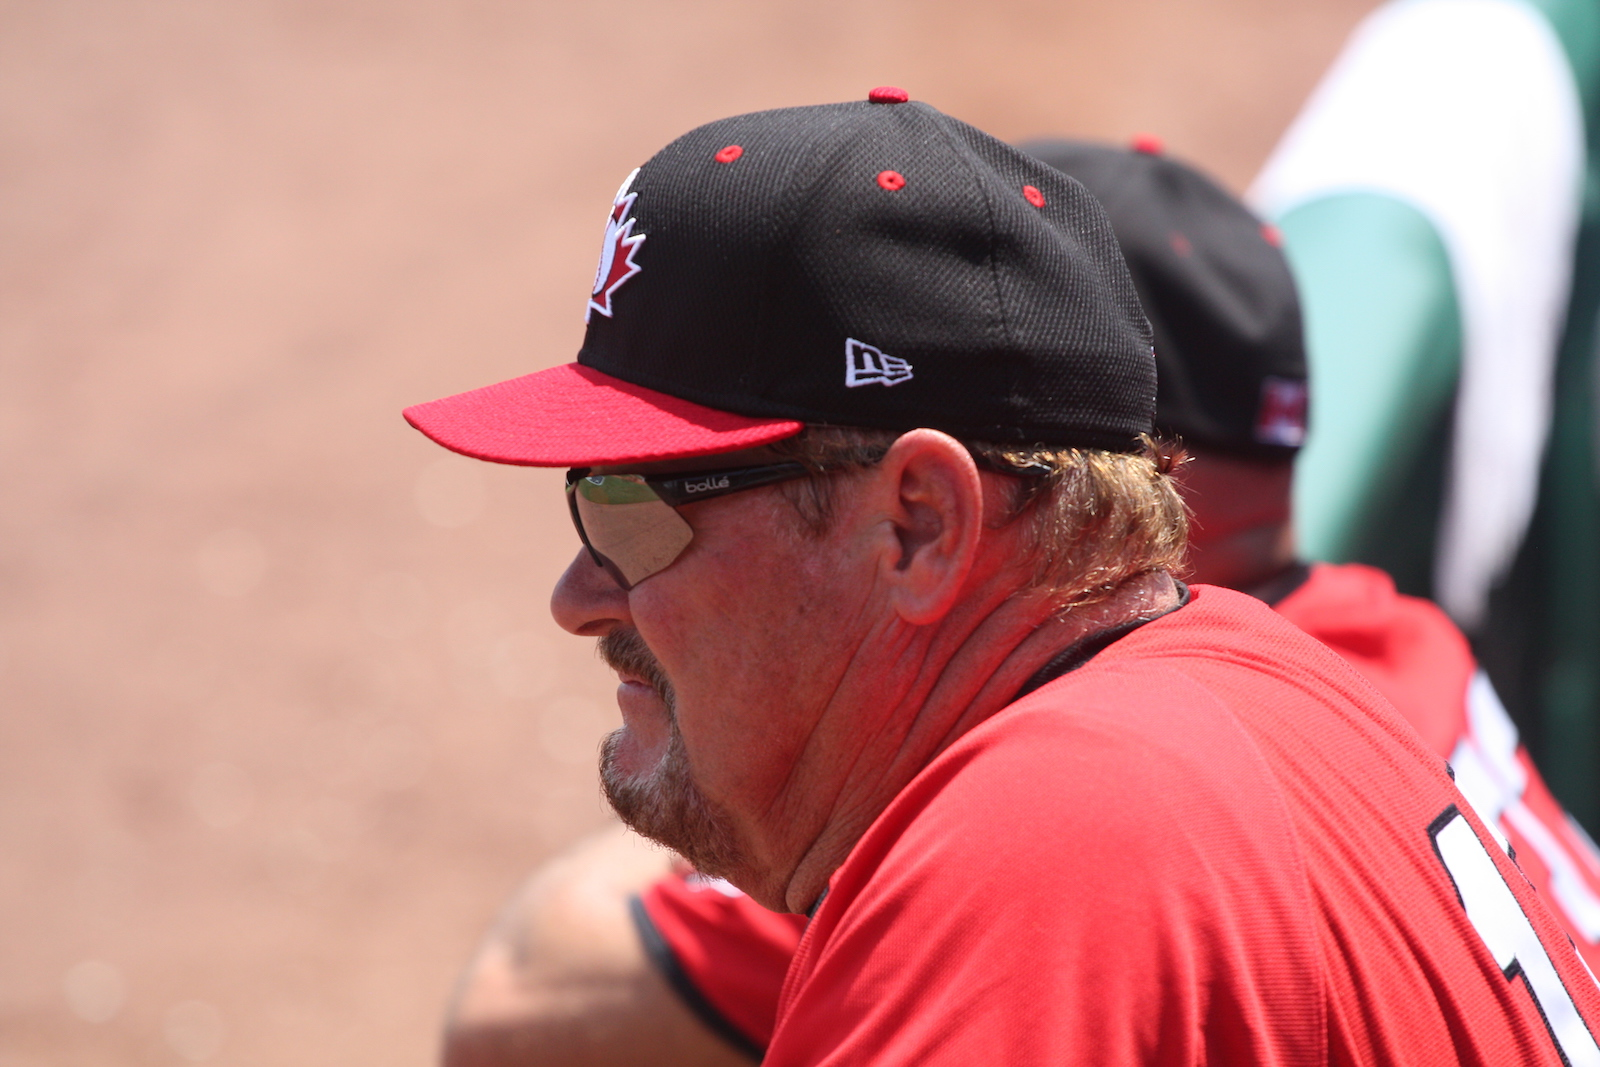 Manager Ernie Whitt, who is from Clinton Township, Mich. a Windsor suburb, is the long-time manager of Baseball Canada's national team. Photo: Baseball Canada